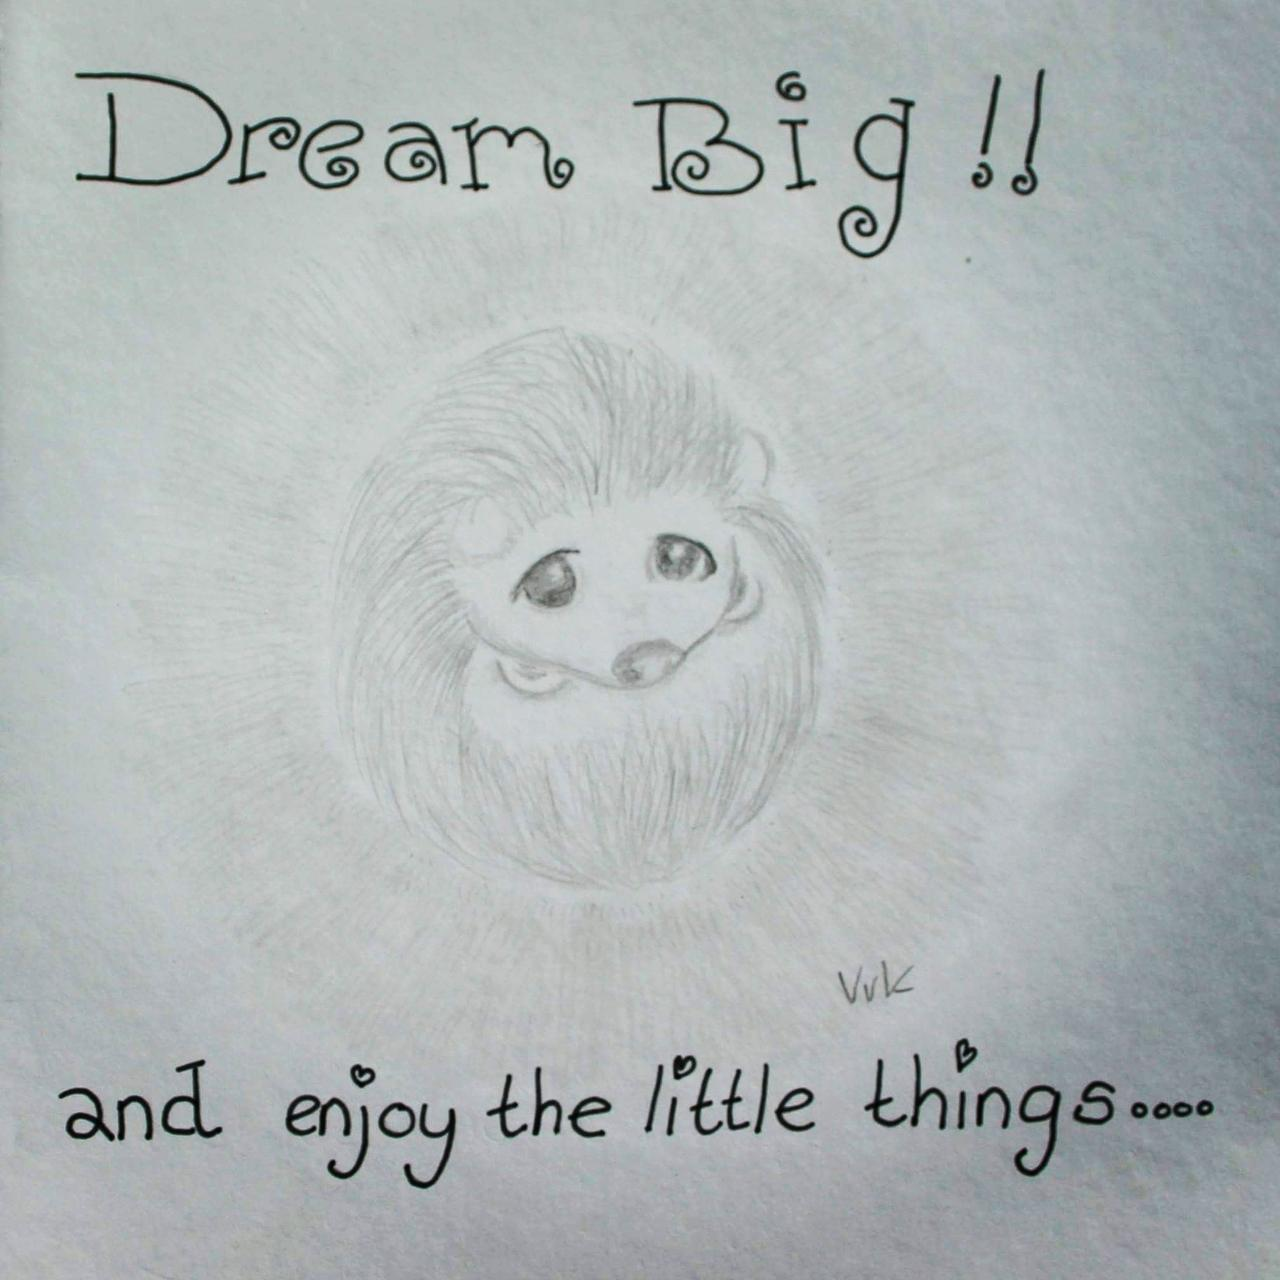 Dream big little hedgehog